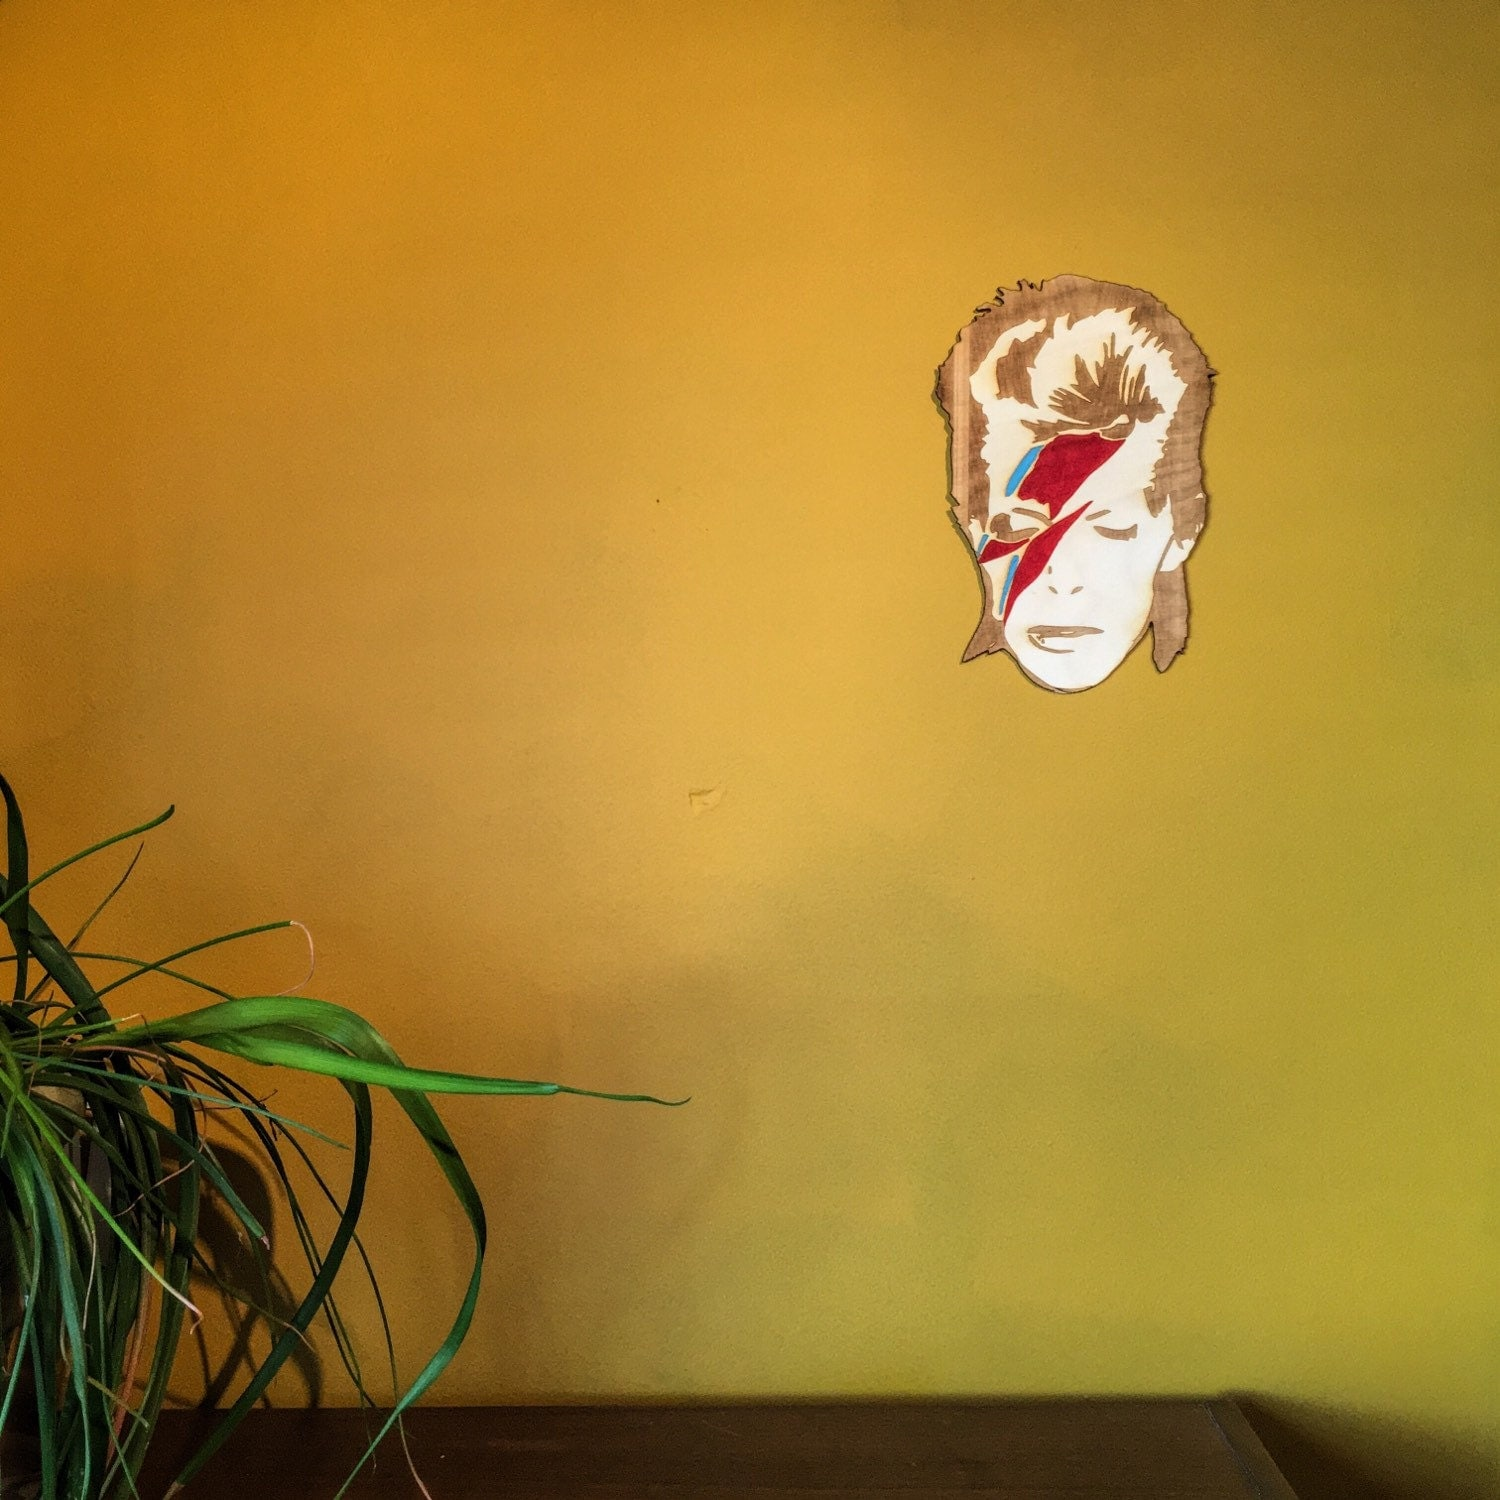 David Bowie Wall Art - Elitflat